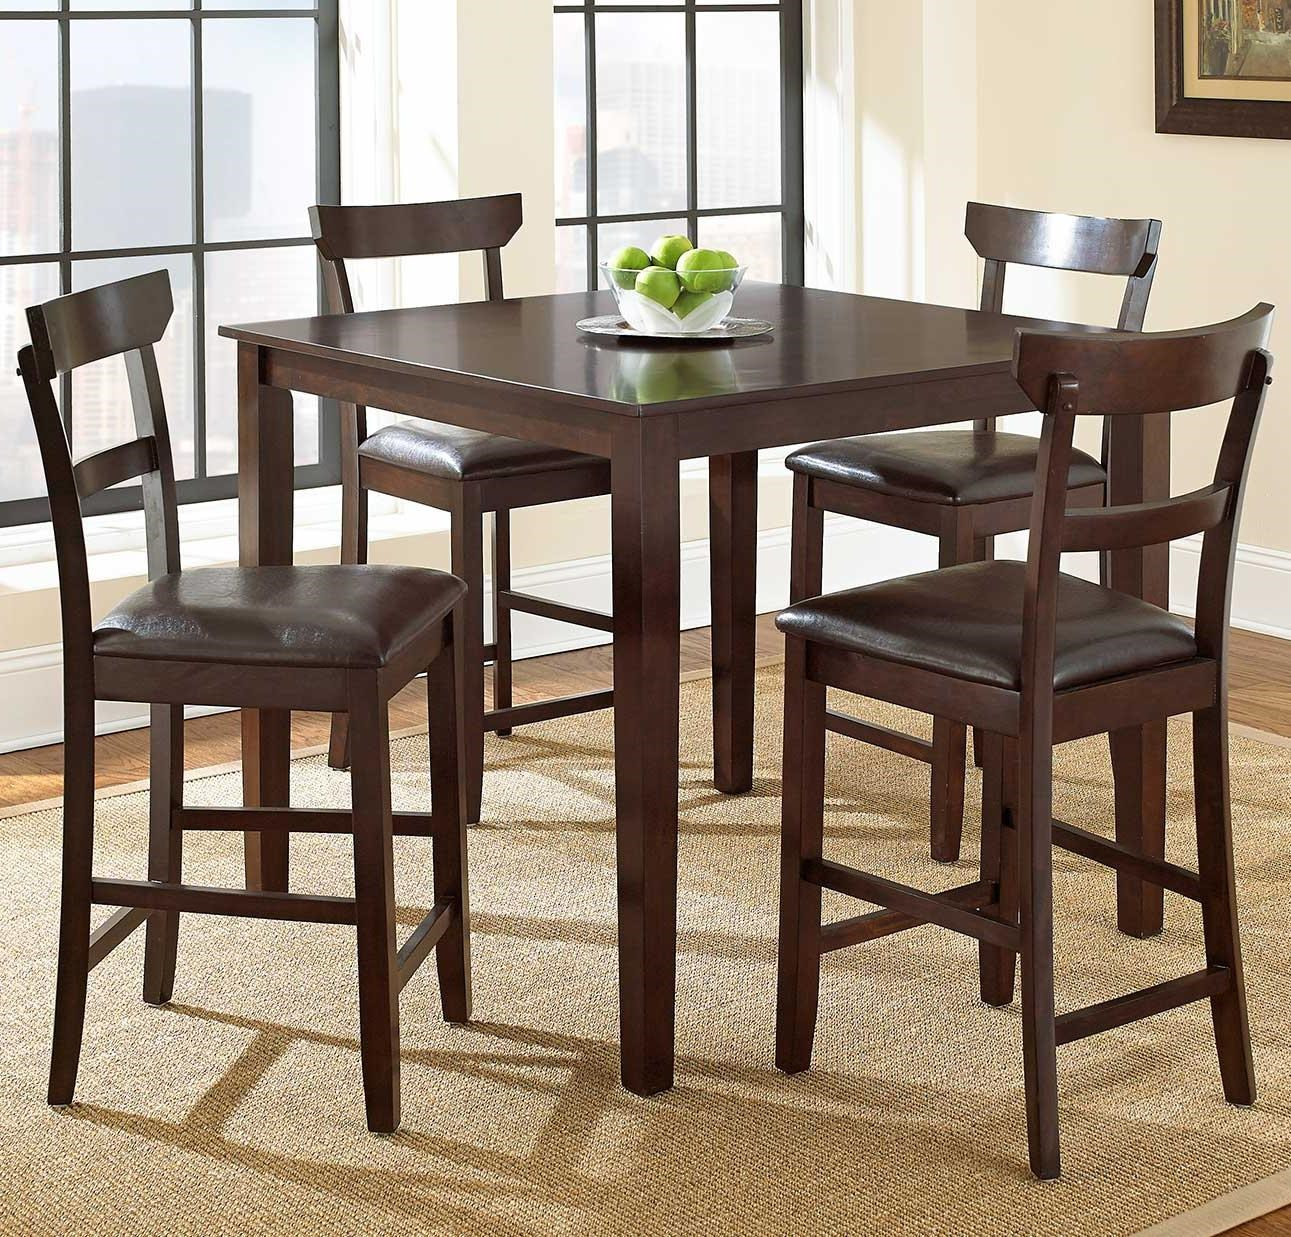 Steve Silver Howard 5 Piece Counter Height Dining Set   Great American Home  Store   Pub Table And Stool Set